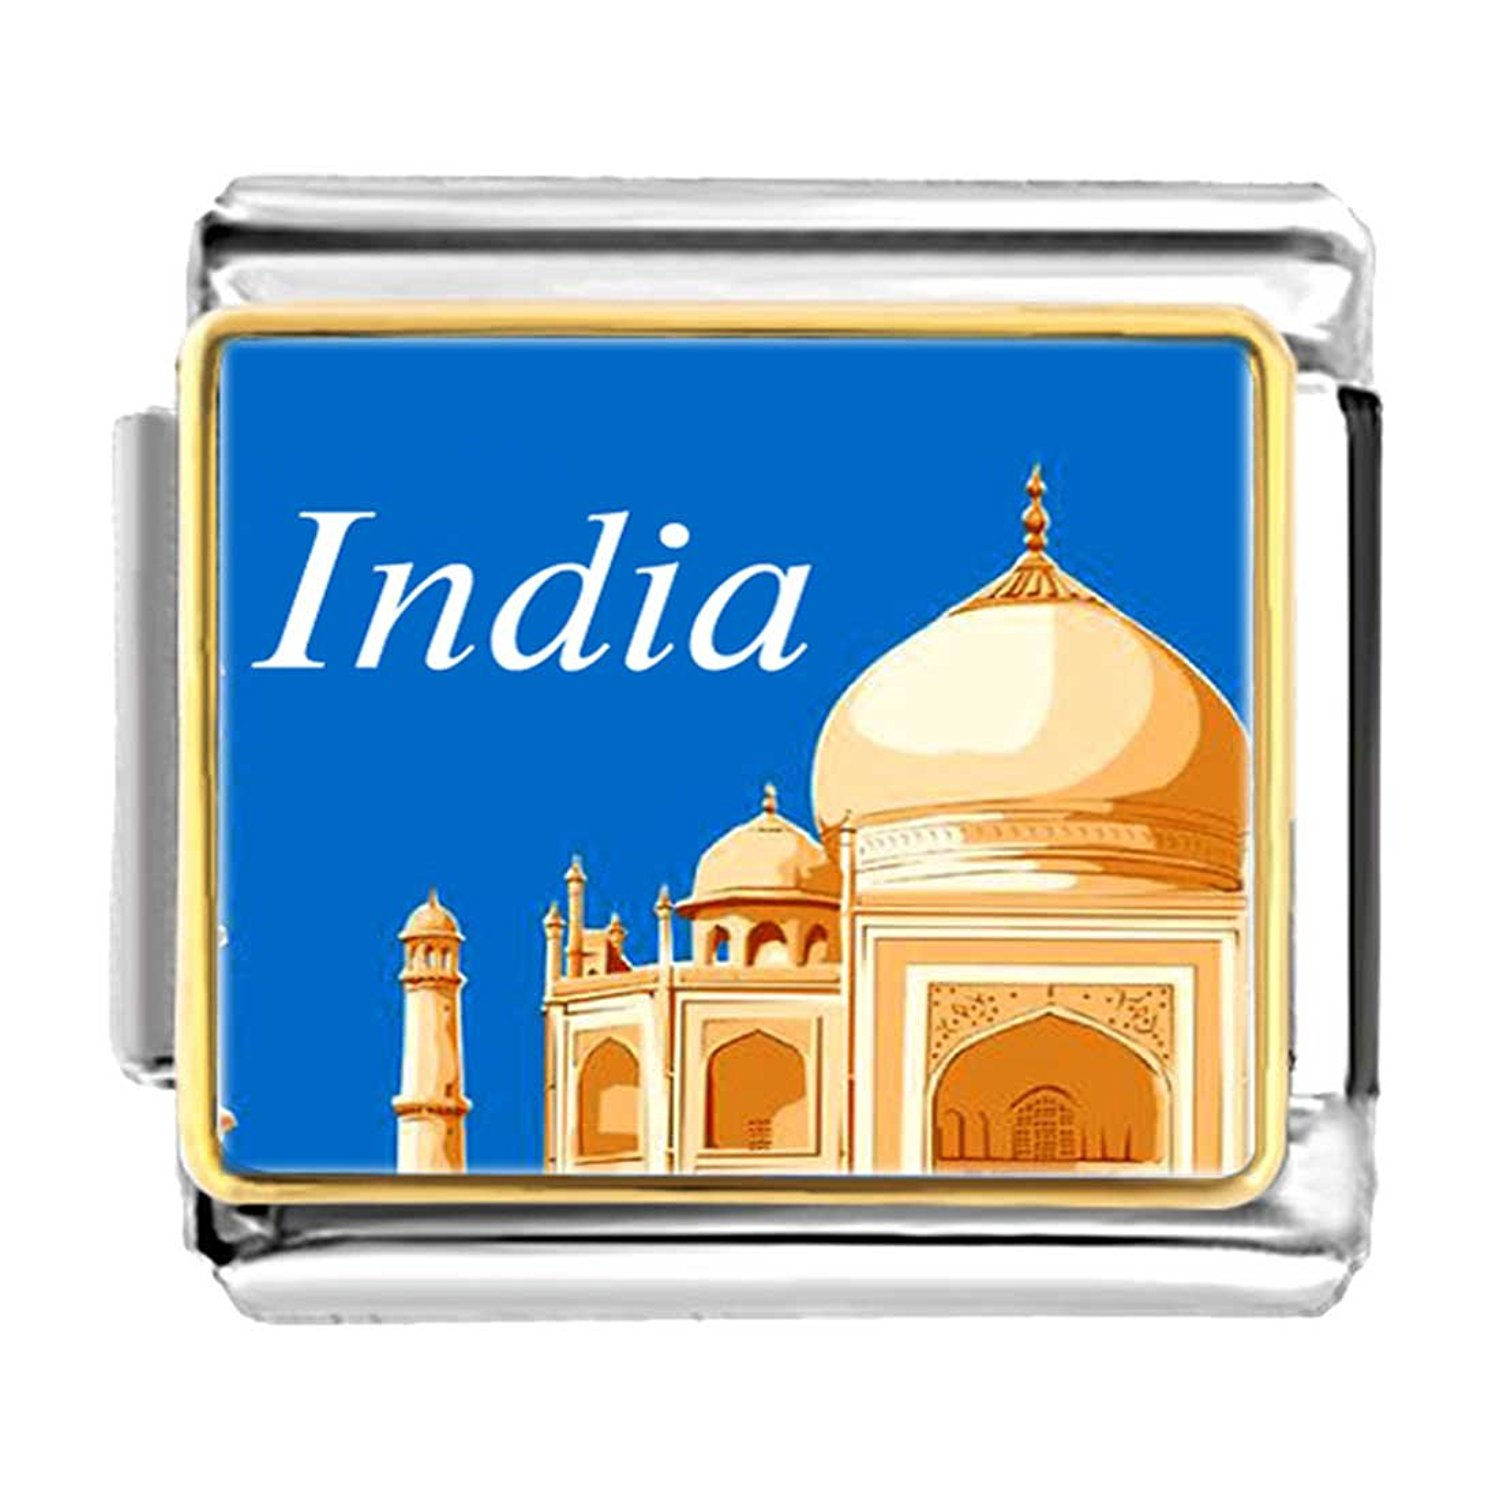 GiftJewelryShop Gold Plated Travel Taj Mahal India Bracelet Link Photo Italian Charm